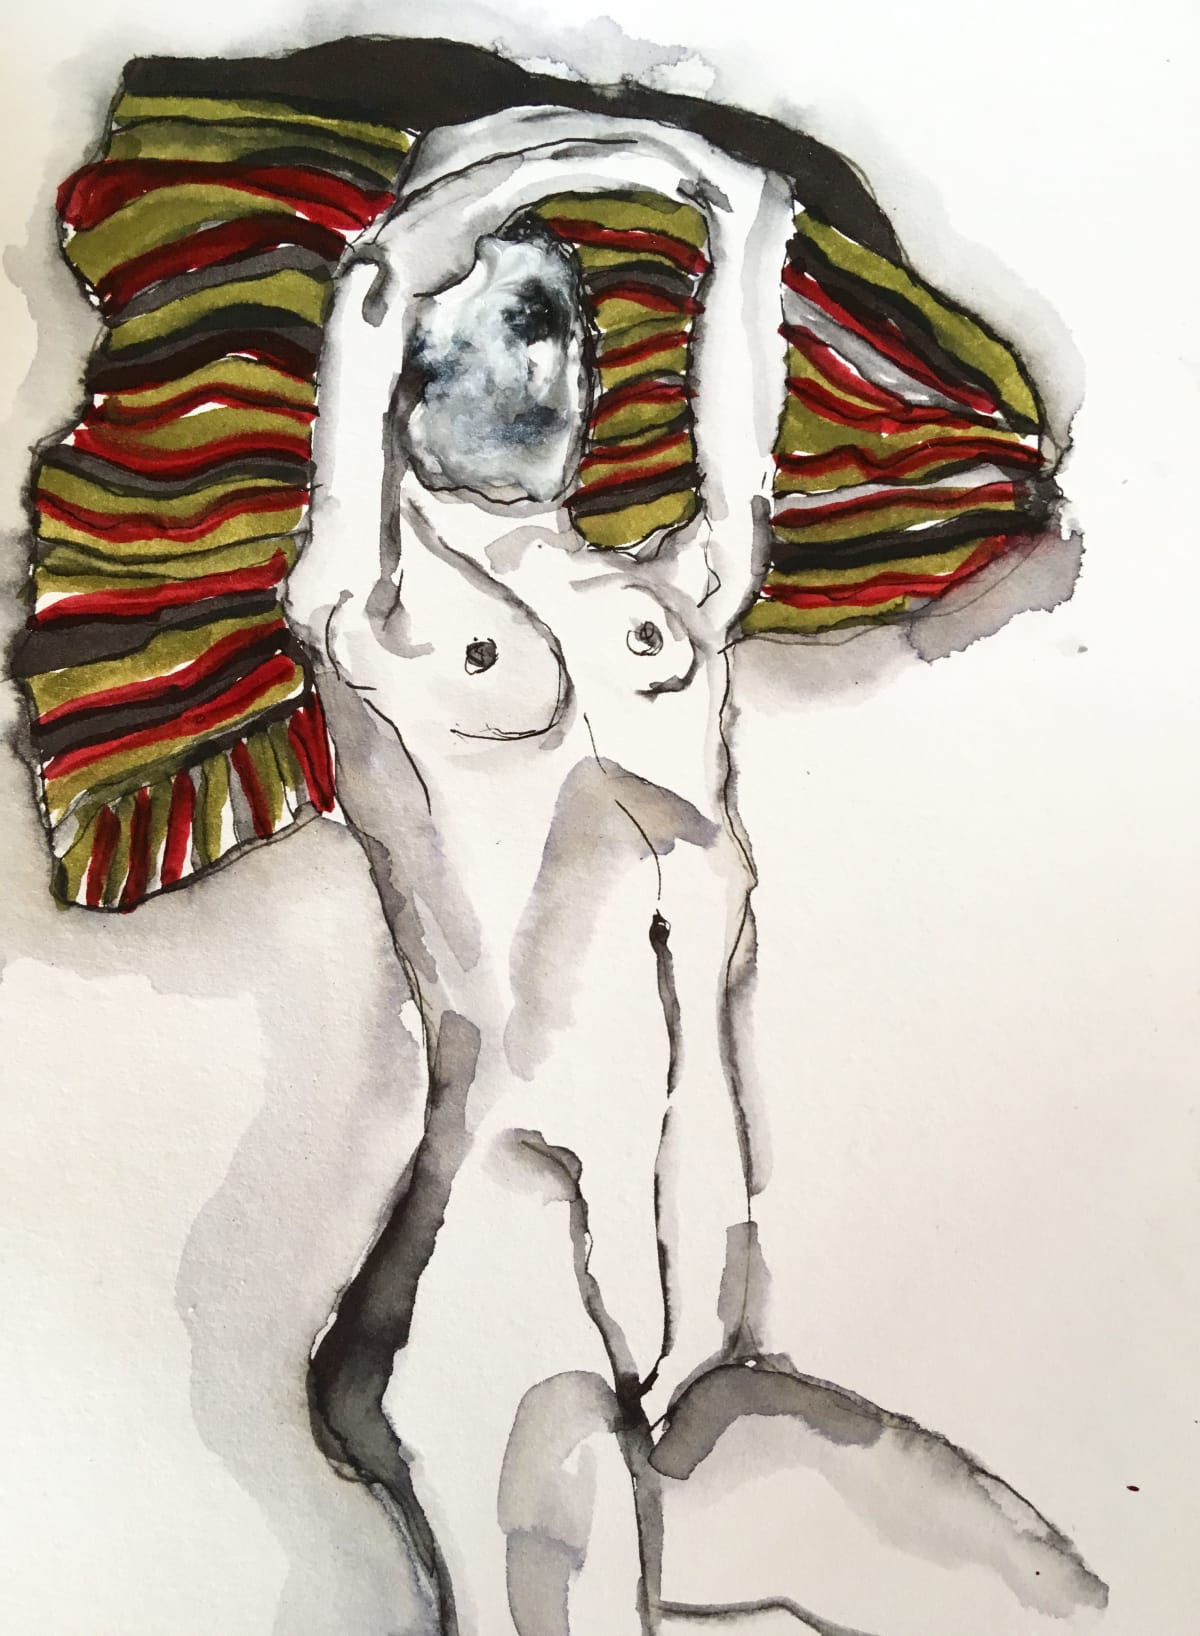 Thelma van Rensburg, Schiele nude on cloth II, 2018